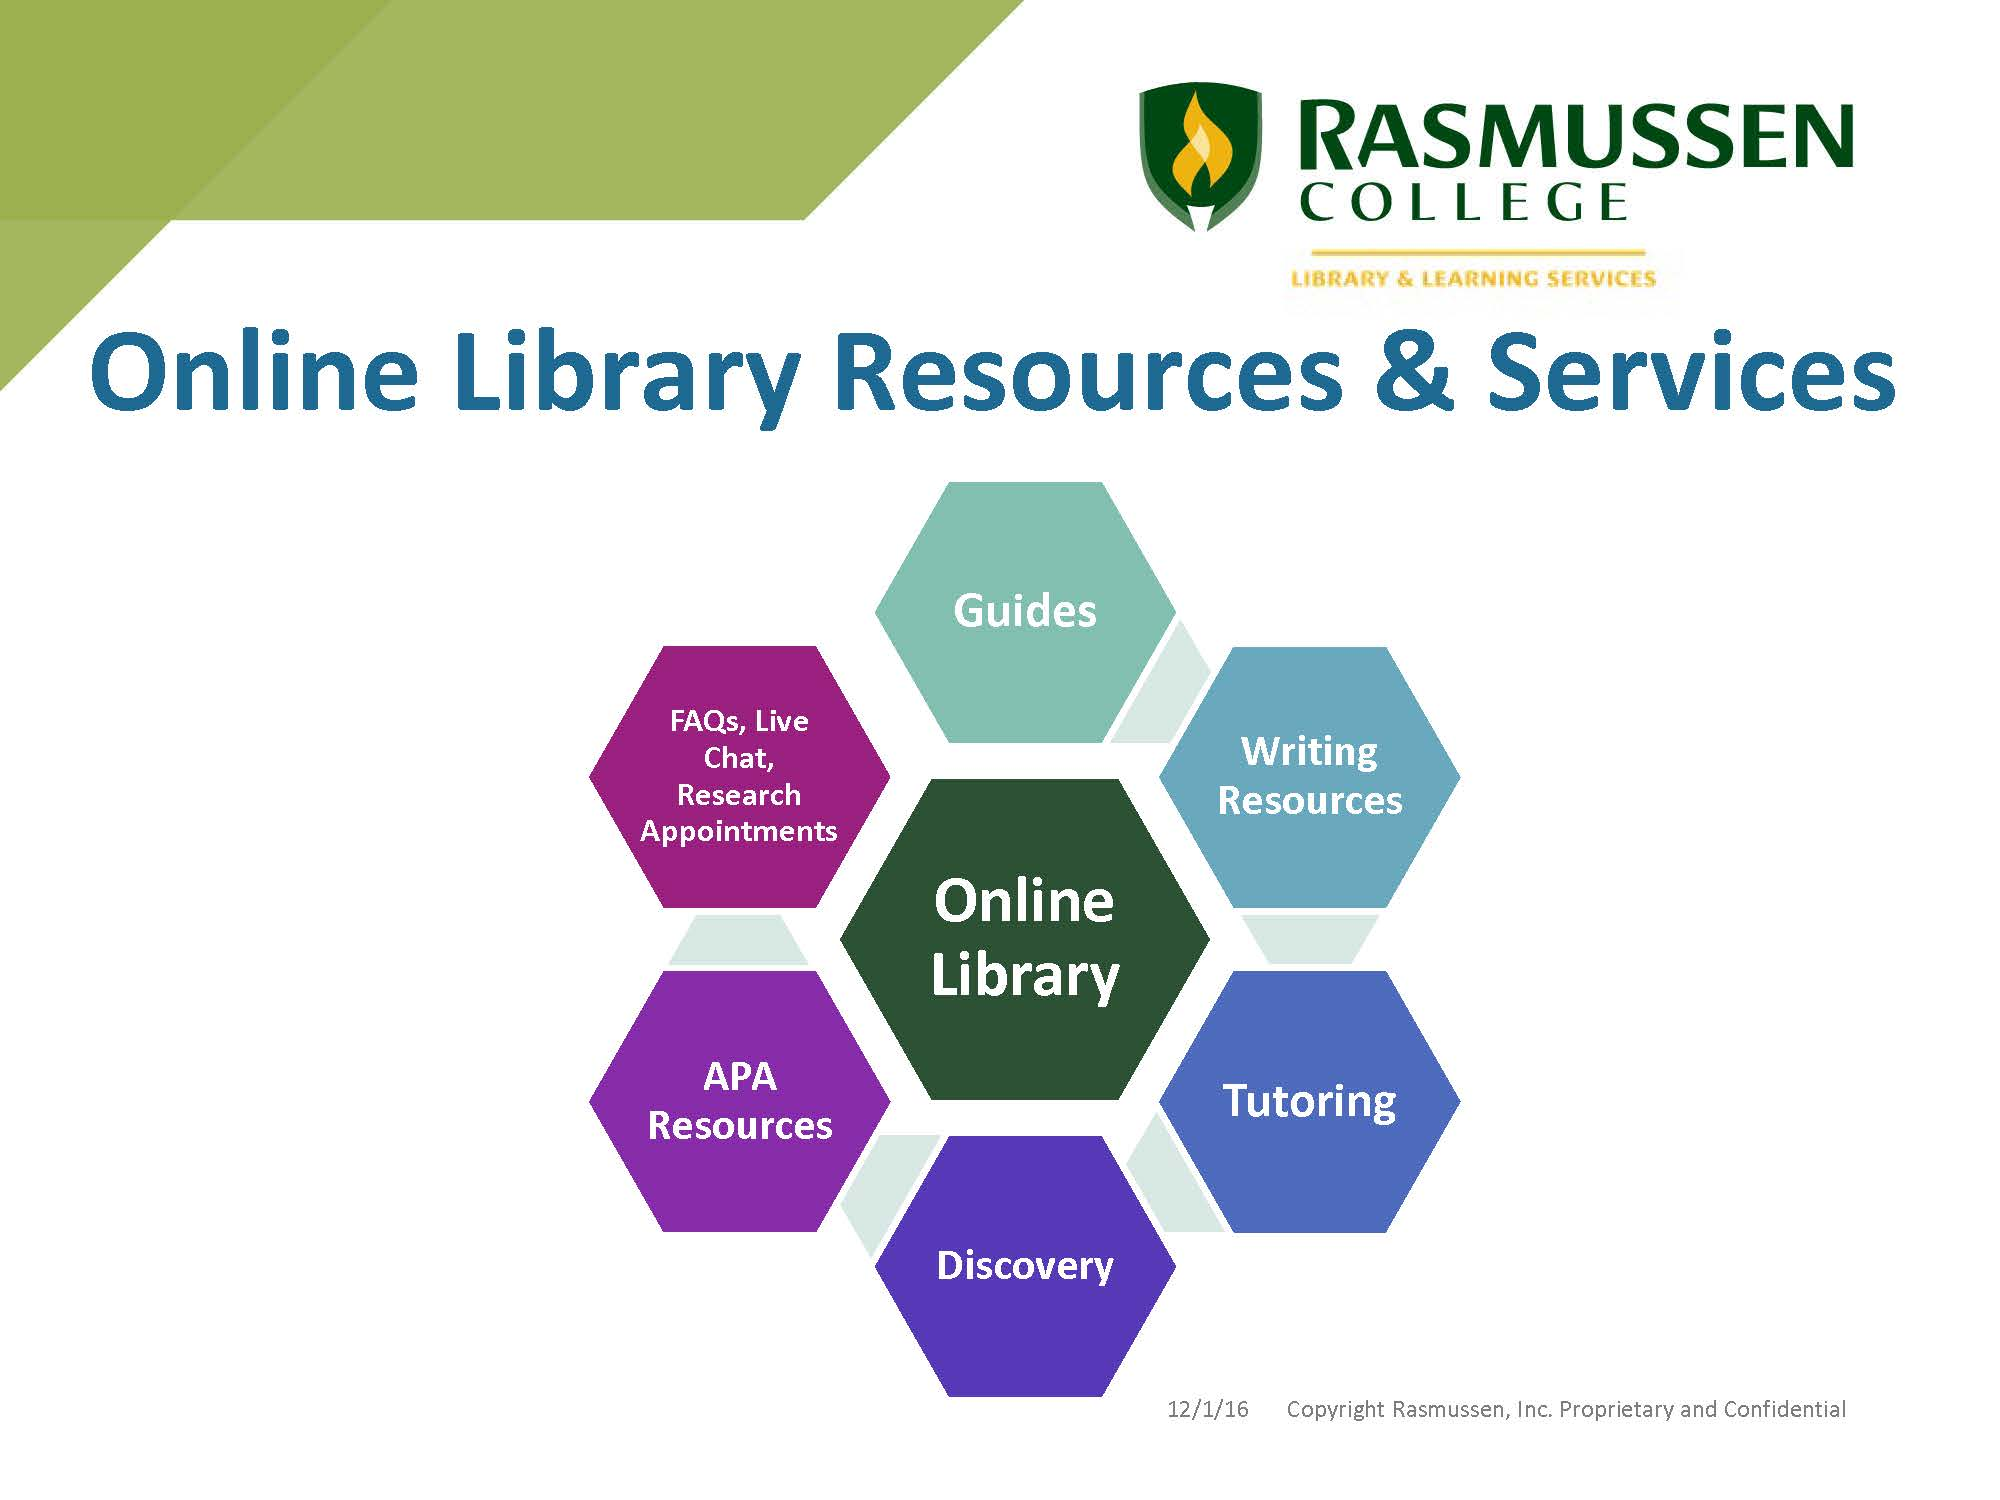 Online Library Resources and Services graphic